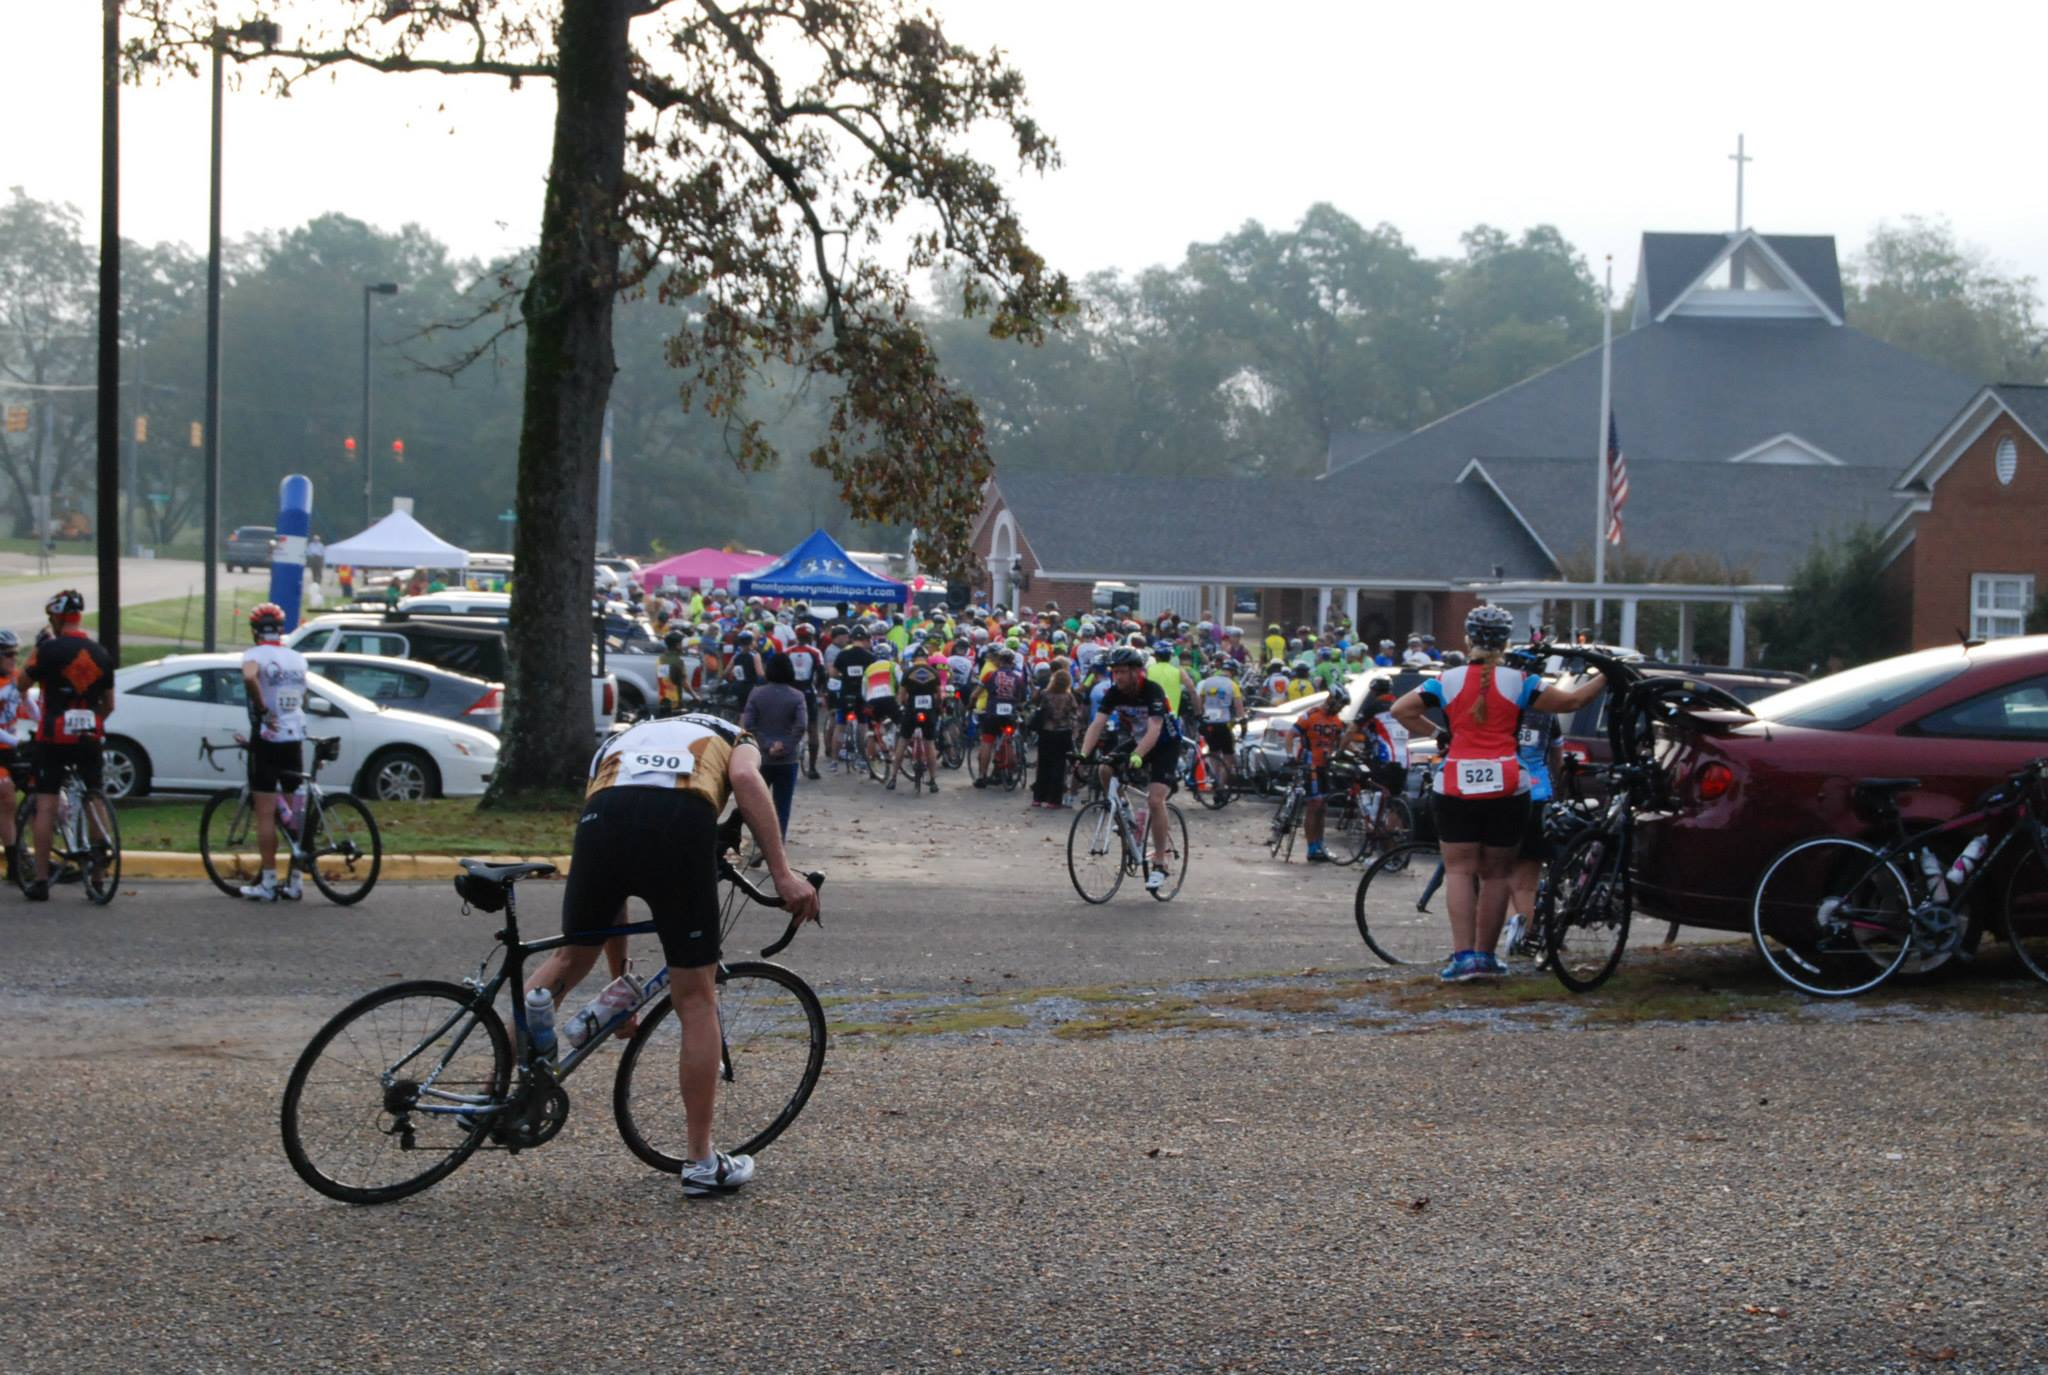 https://alabama-travel.s3.amazonaws.com/partners-uploads/photo/image/577c05774d64212db2000005/riders_queuing_to_start_the_2015_glassner.jpg